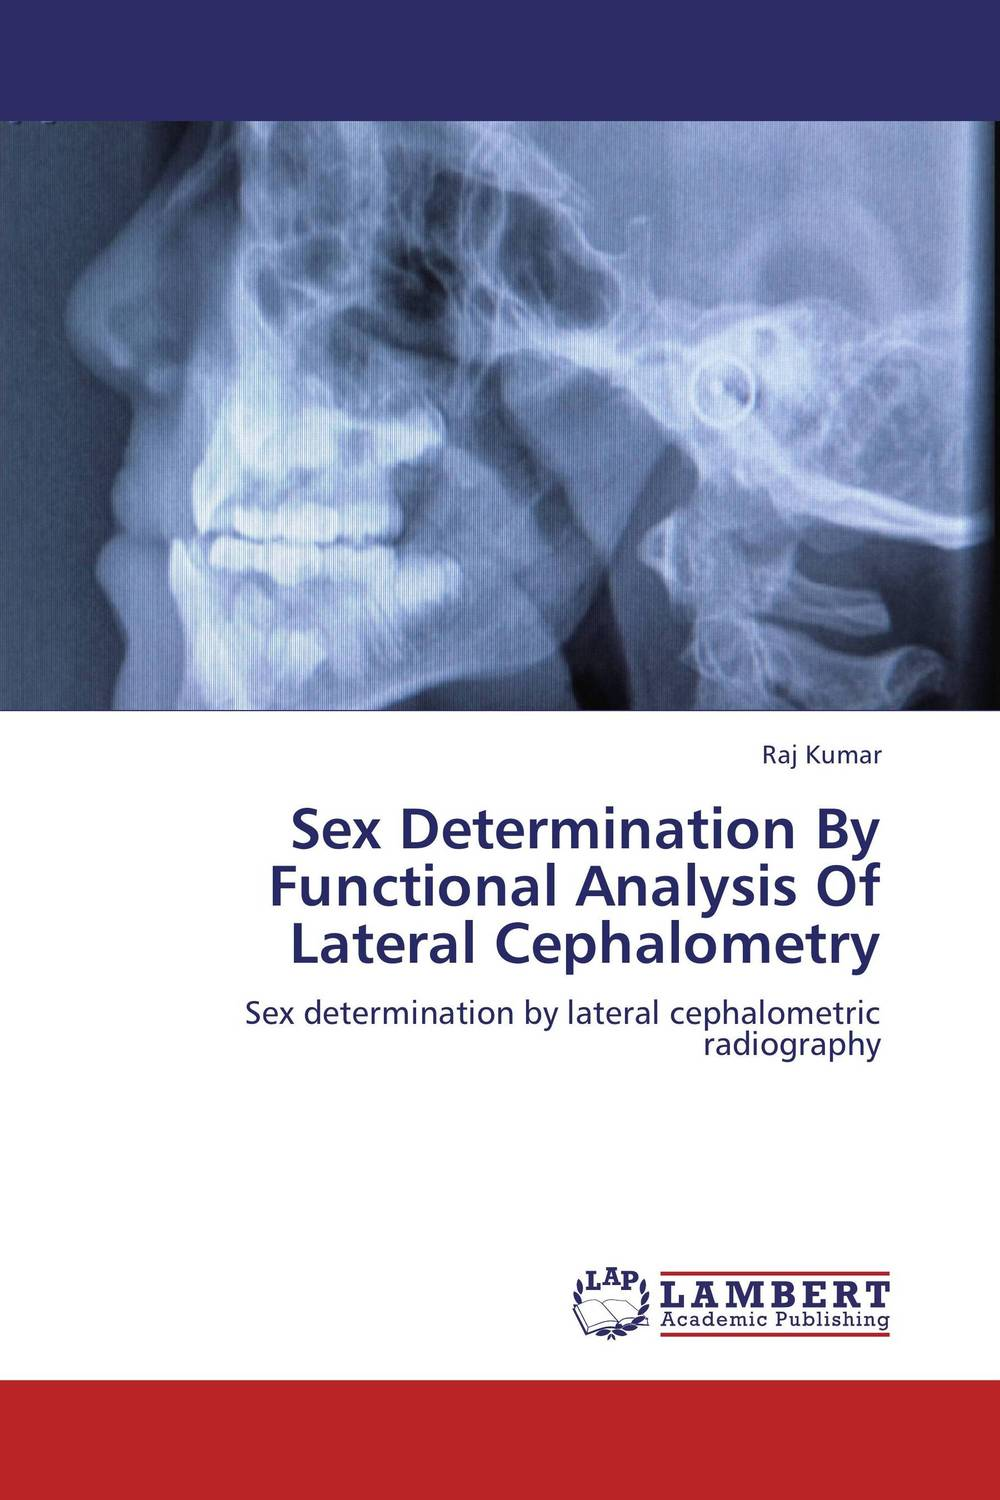 Sex Determination By Functional Analysis Of Lateral Cephalometry hilton mambosho an osteological analysis of human skeletal remains from ansarve site